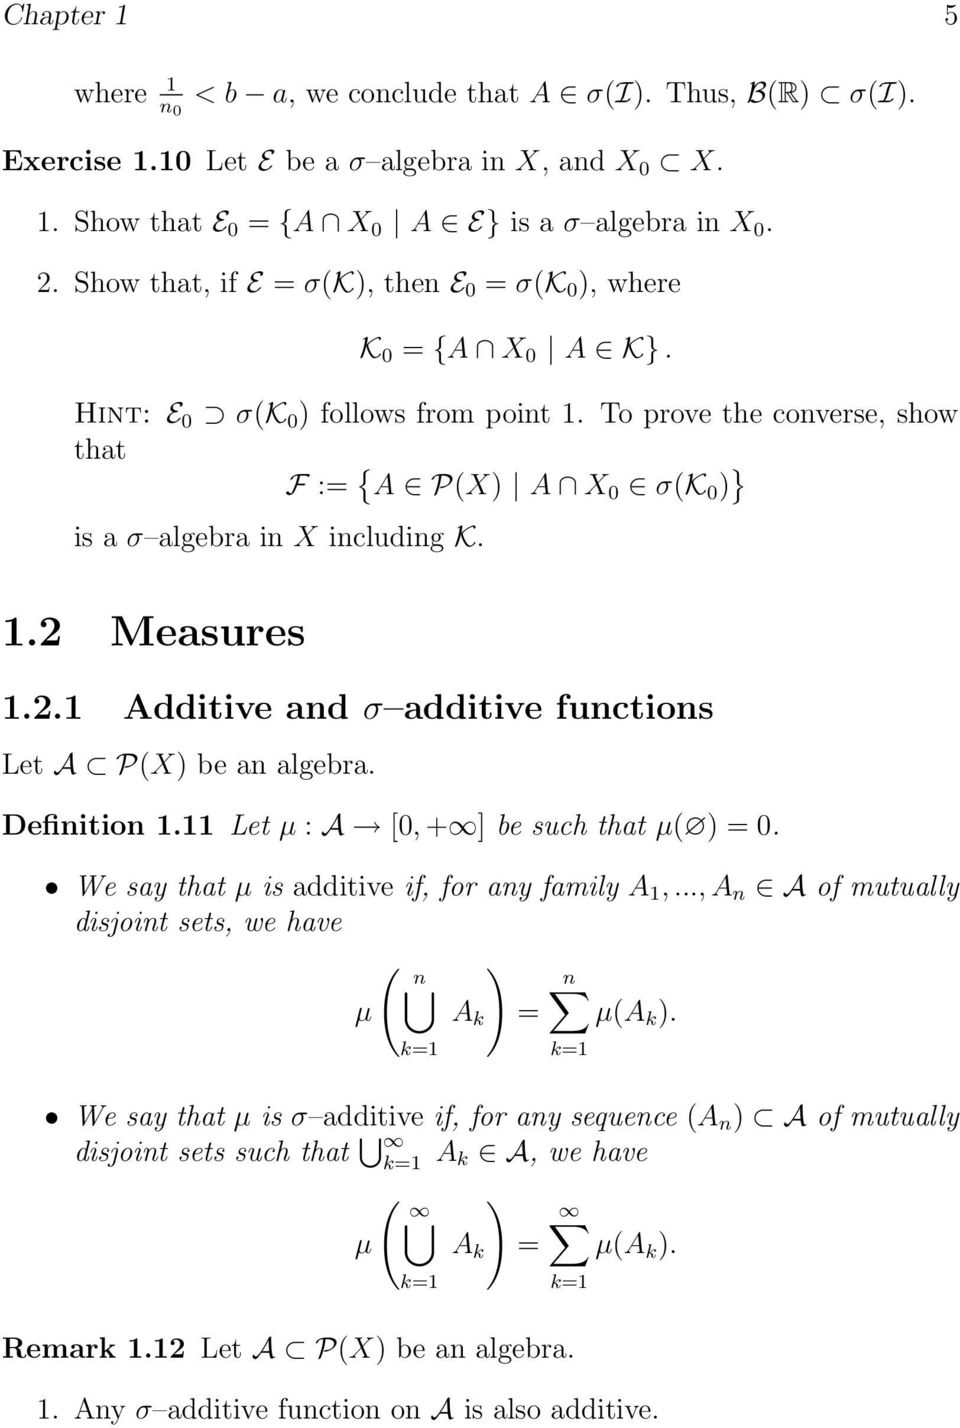 2.1 Additive and σ additive functions Let A P() be an algebra. Definition 1.11 Let µ : A [0, + ] be such that µ( ) = 0. We say that µ is additive if, for any family A 1,.